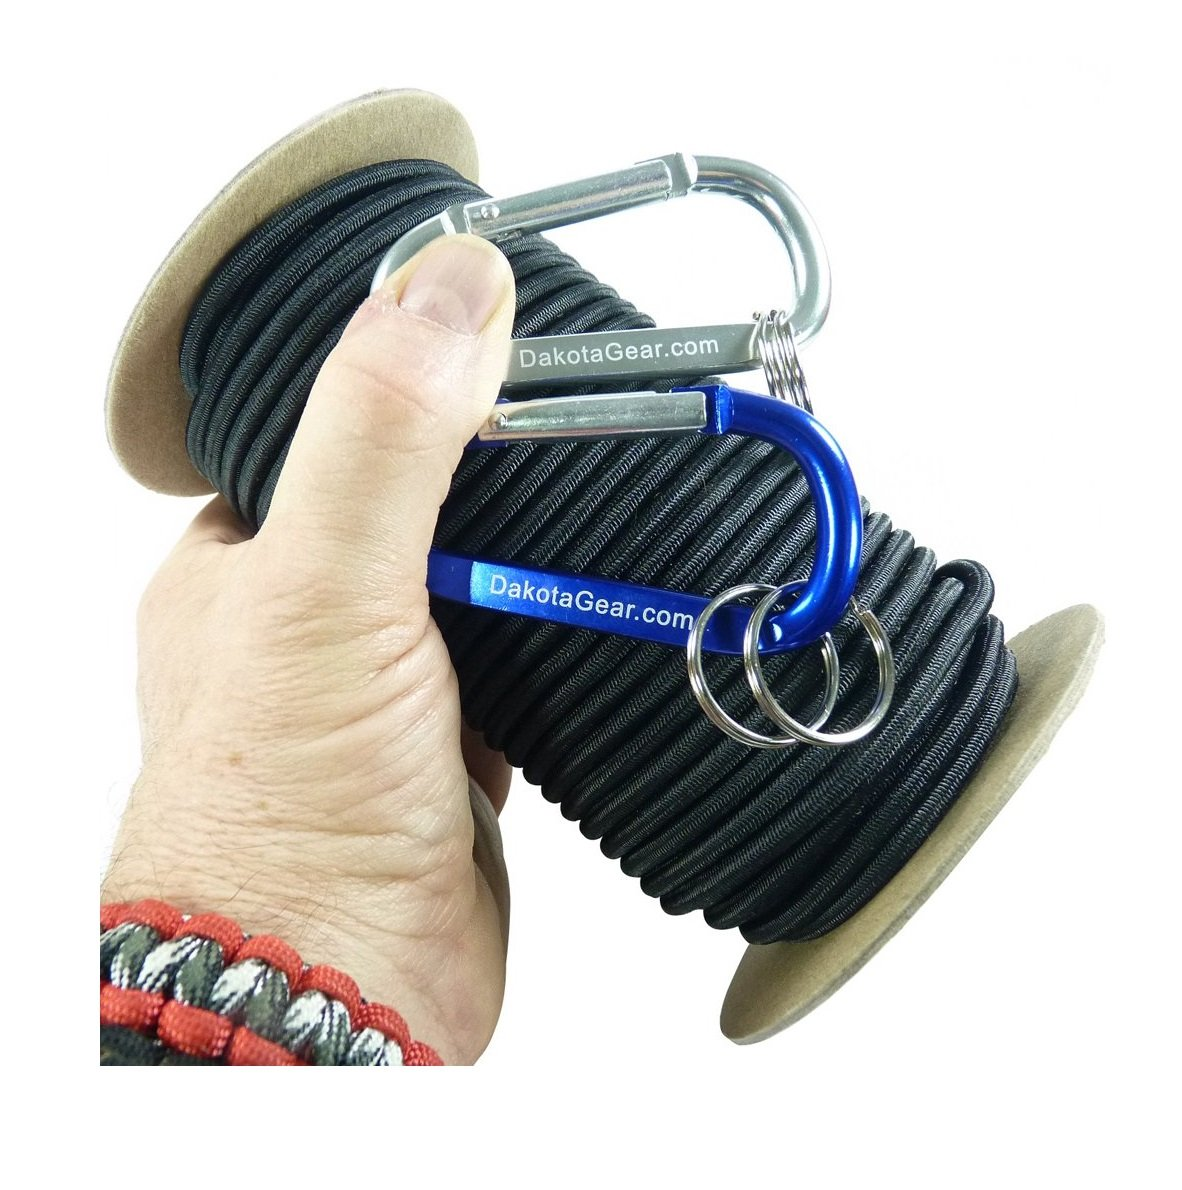 Dakota Gear (TM) Shock Cord - COSMIC BLACK - 3/16'' x 80 ft. Spool. Marine Grade. Also called Bungee Cord, Stretch Cord & Elastic Cord. Made In USA. 2 Carabiners and Knot Tying eBook.